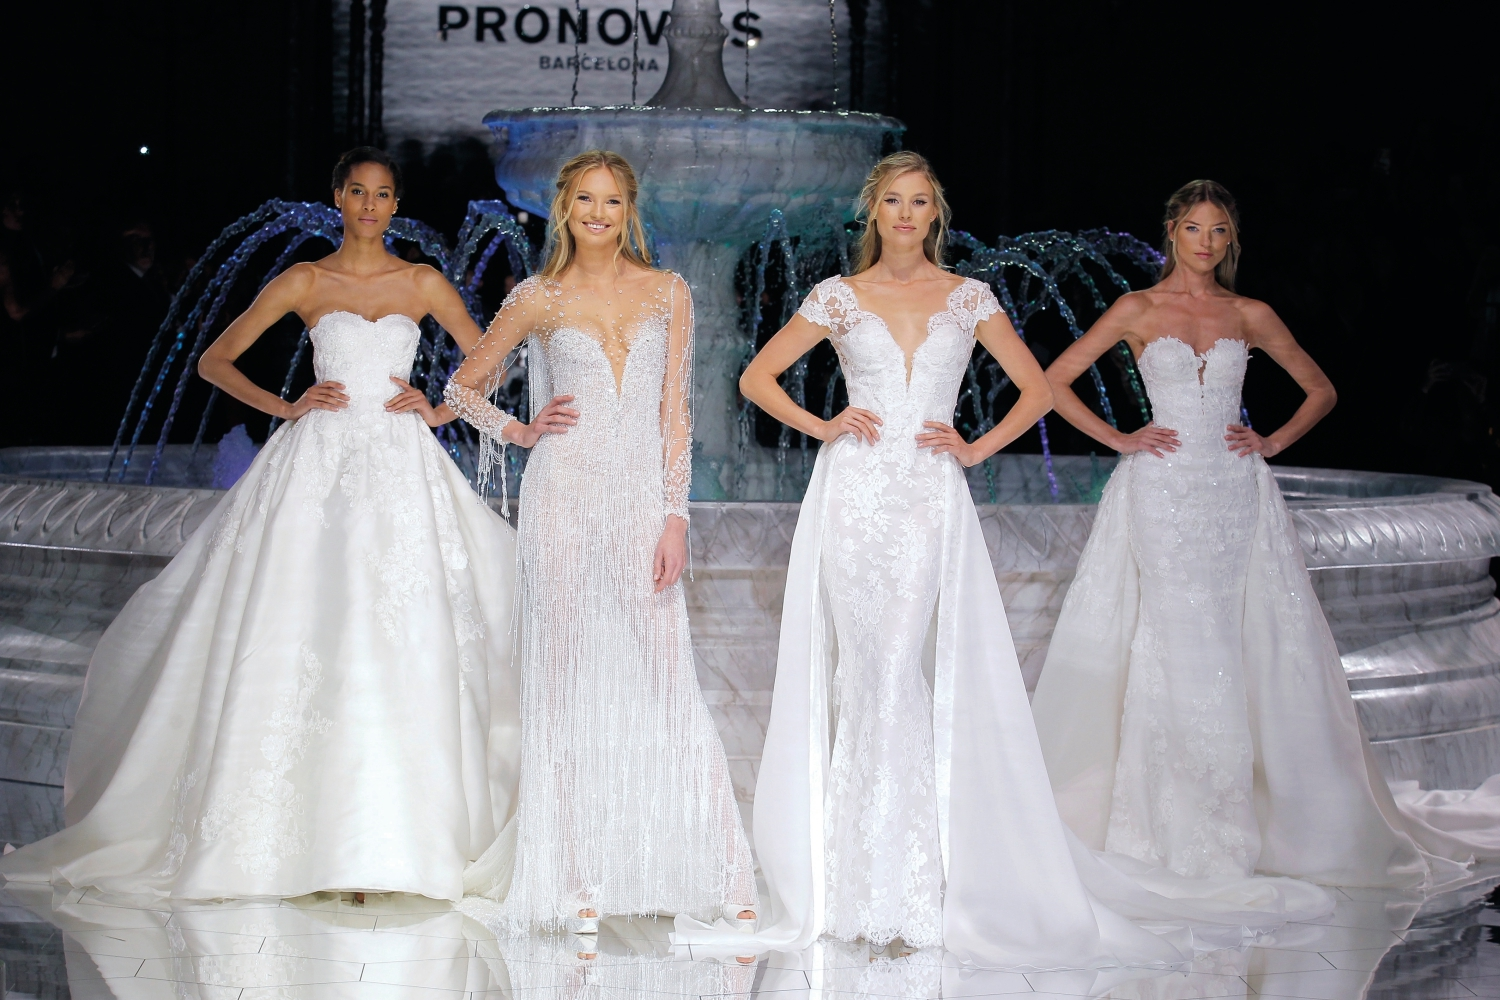 1-PRONOVIAS FASHION SHOW_Roxana, Riva,